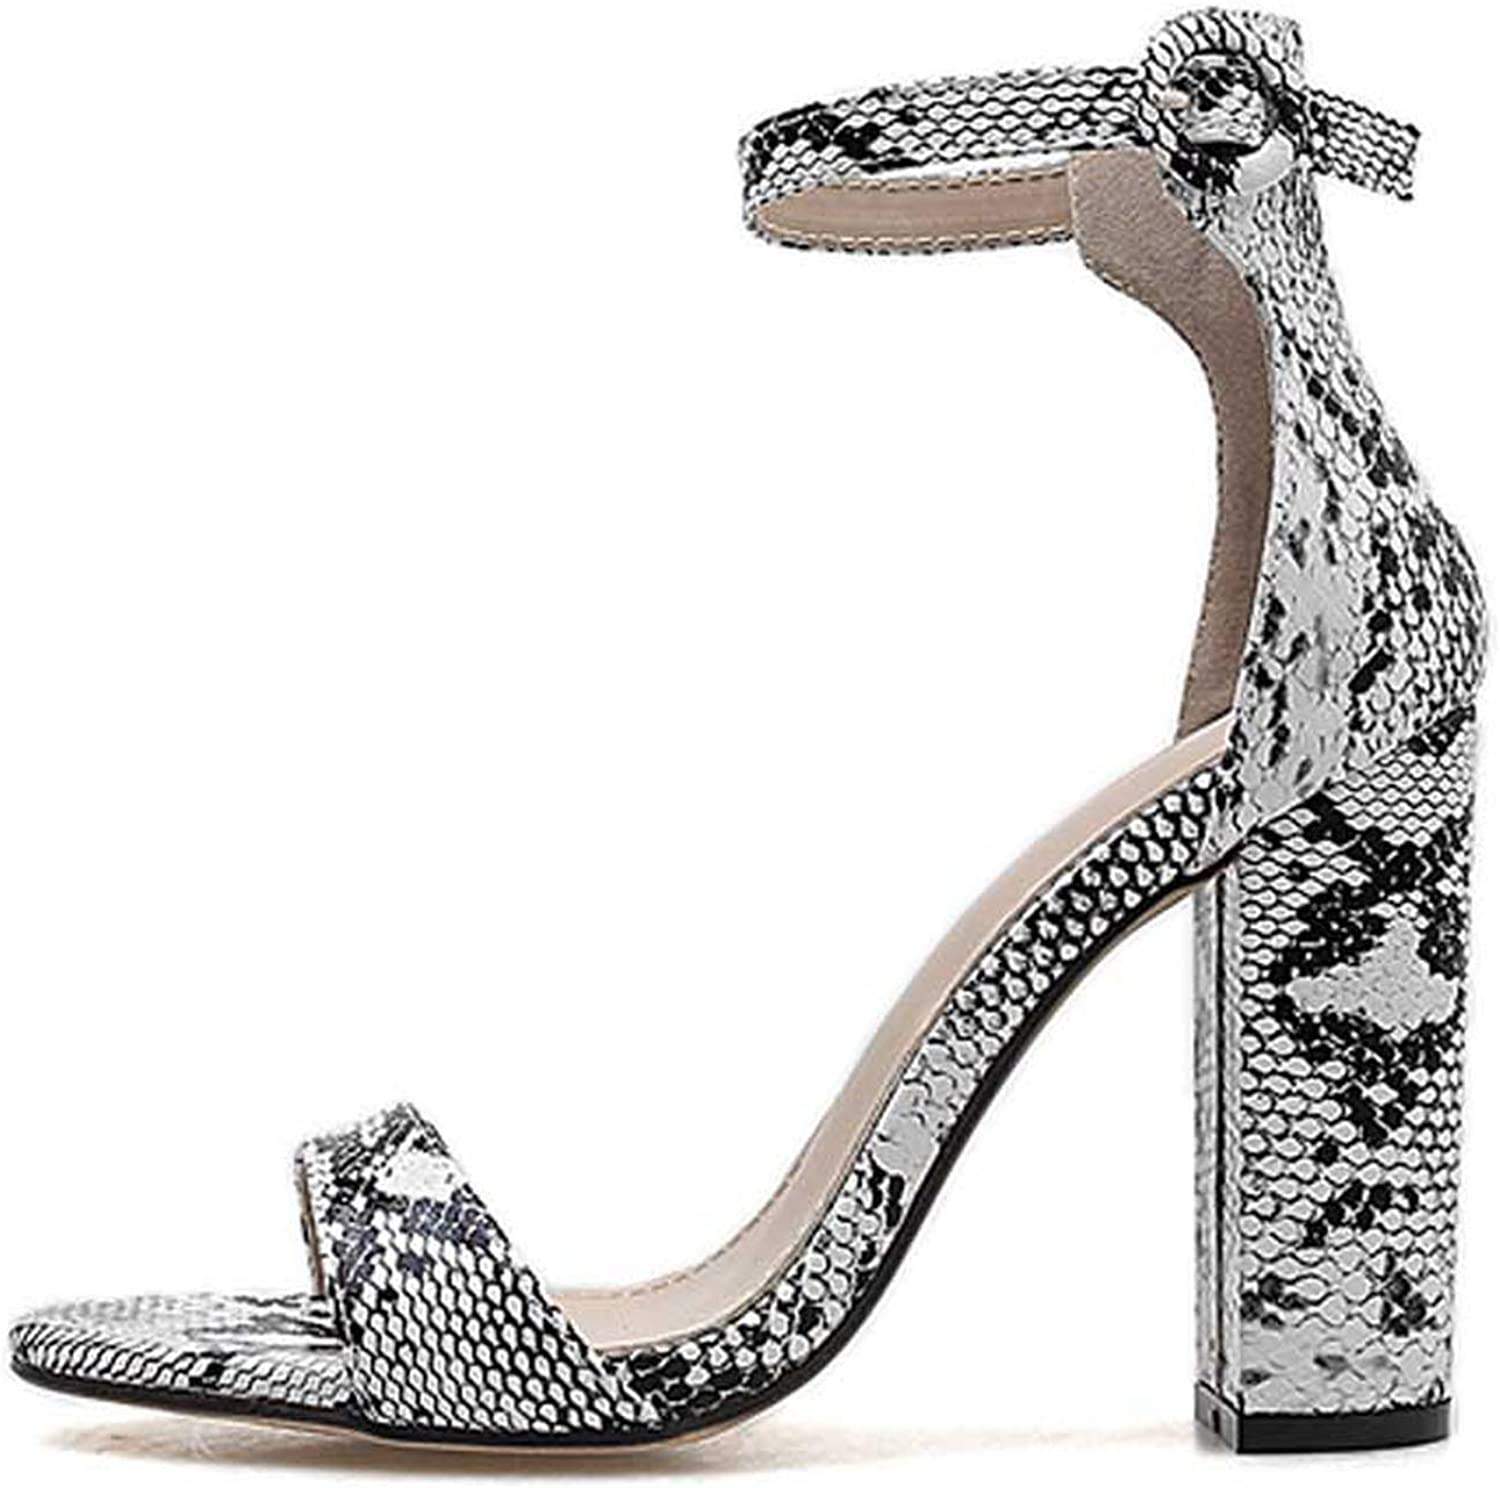 Zombie Jessica Women Ankle Strap Sandals Snake Print Square Heel Fashion Pointed Toe Ladies Fashion shoes New Women Sandals